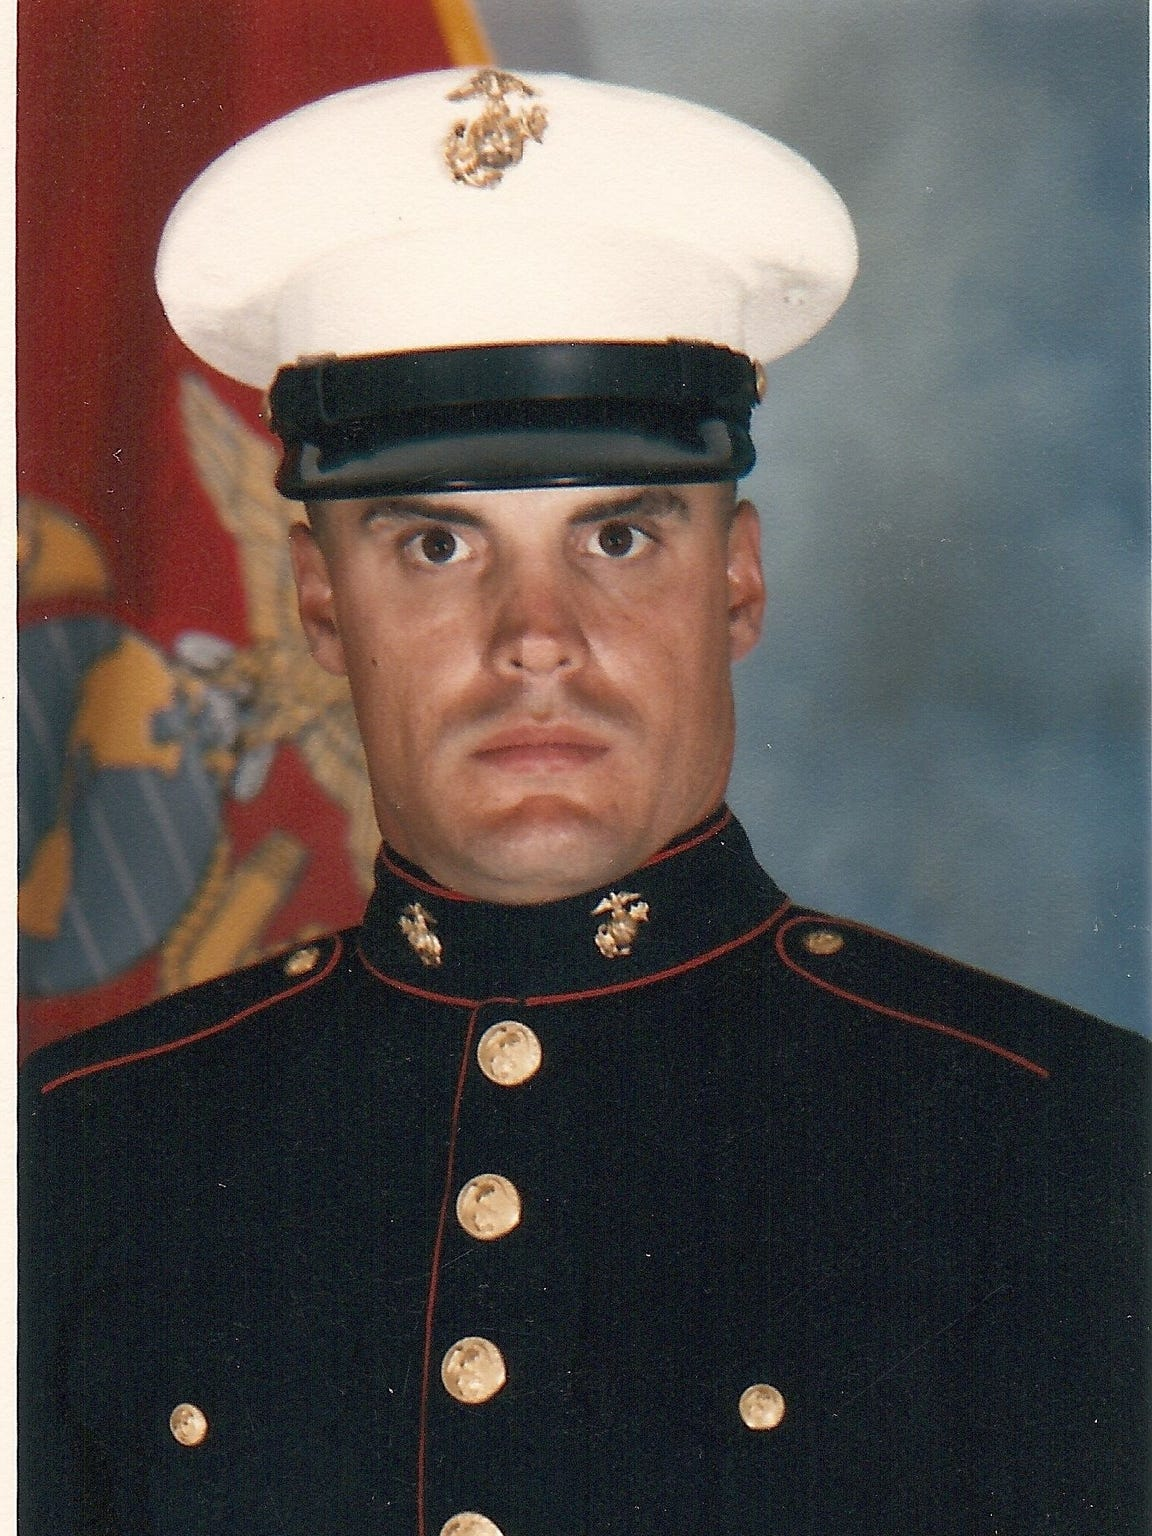 Wren Thomas graduated  from the Marine Corps in 1989.